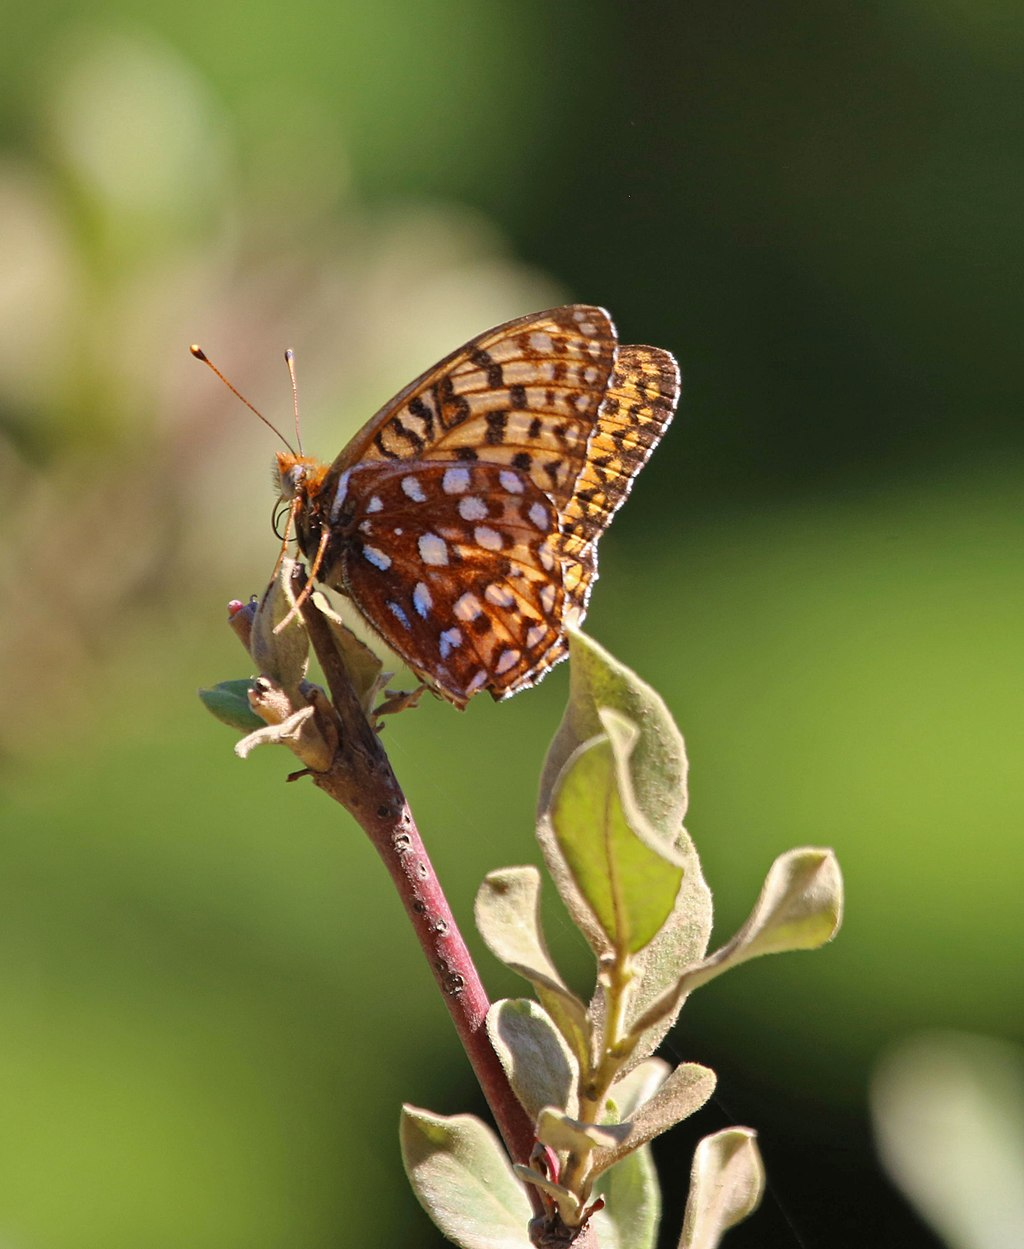 Oregon Silverspot Butterfly, by Peter Pearsall/U.S. Fish and Wildlife Service